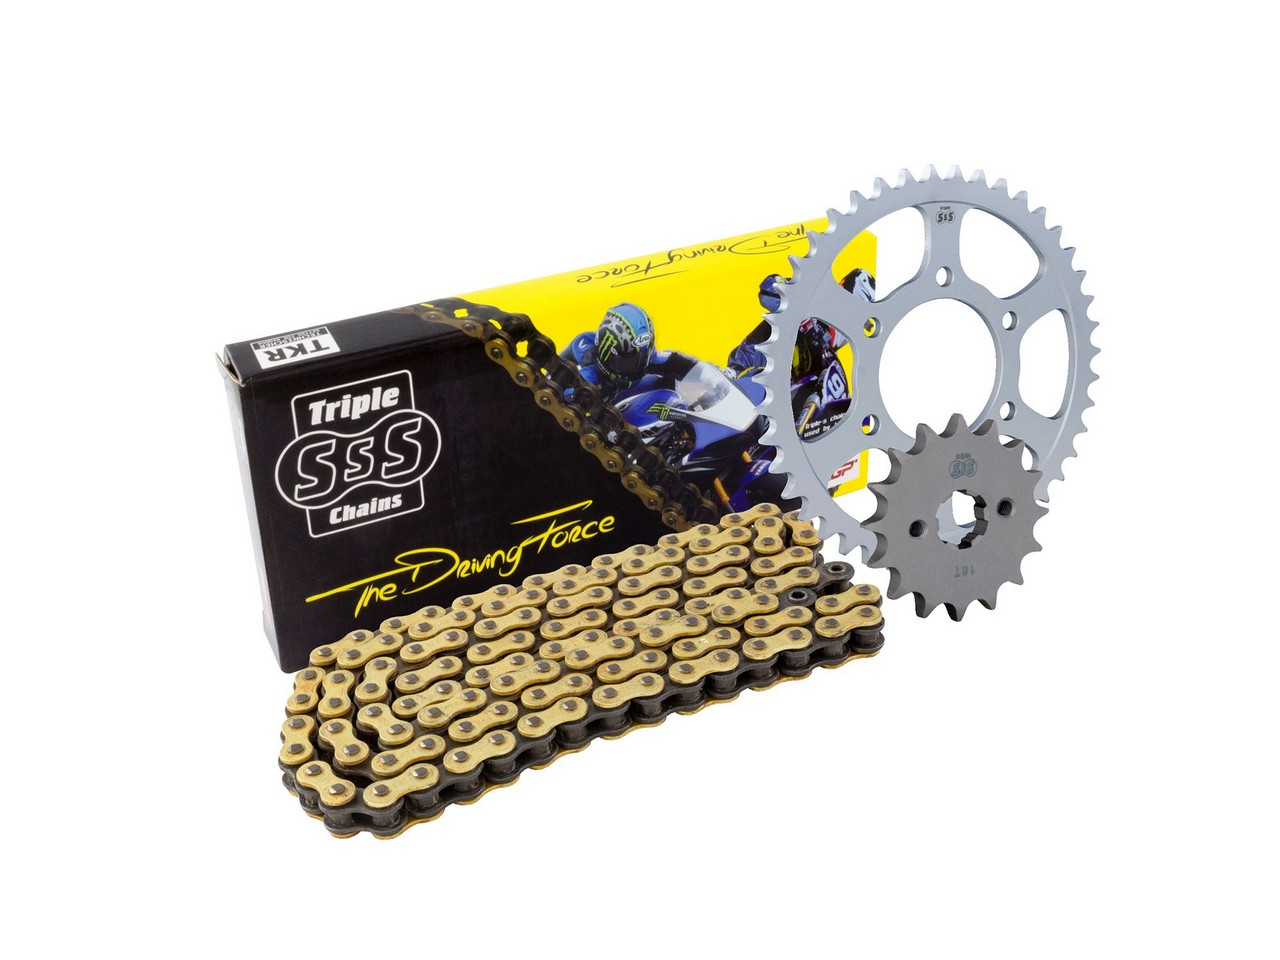 BIKE IT Kawasaki W800 11-16 Chain & Sprocket Kit: 15T Front, 37T Rear, HD O-Ring Gold Chain 520H 104Link